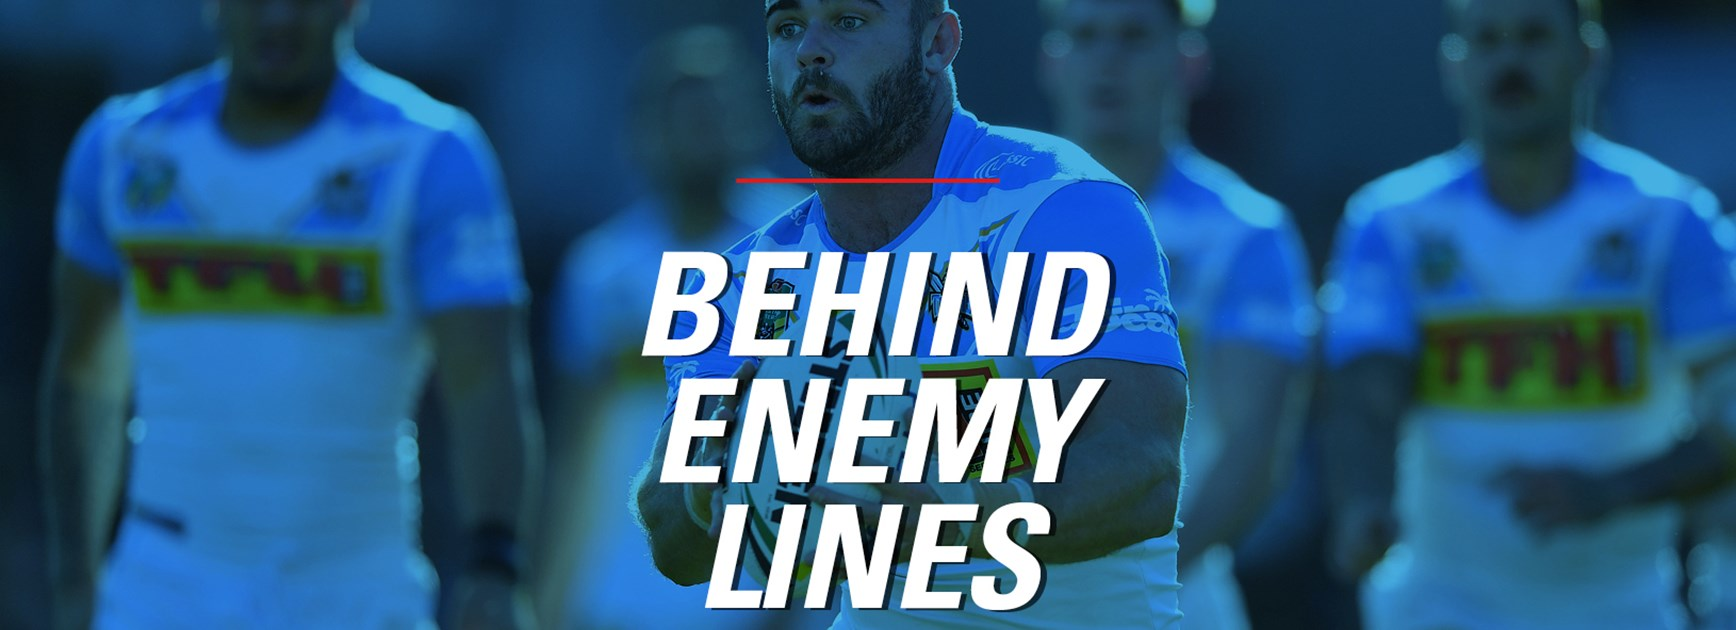 Behind Enemy Lines Round 19: Titans motivation to finish strong